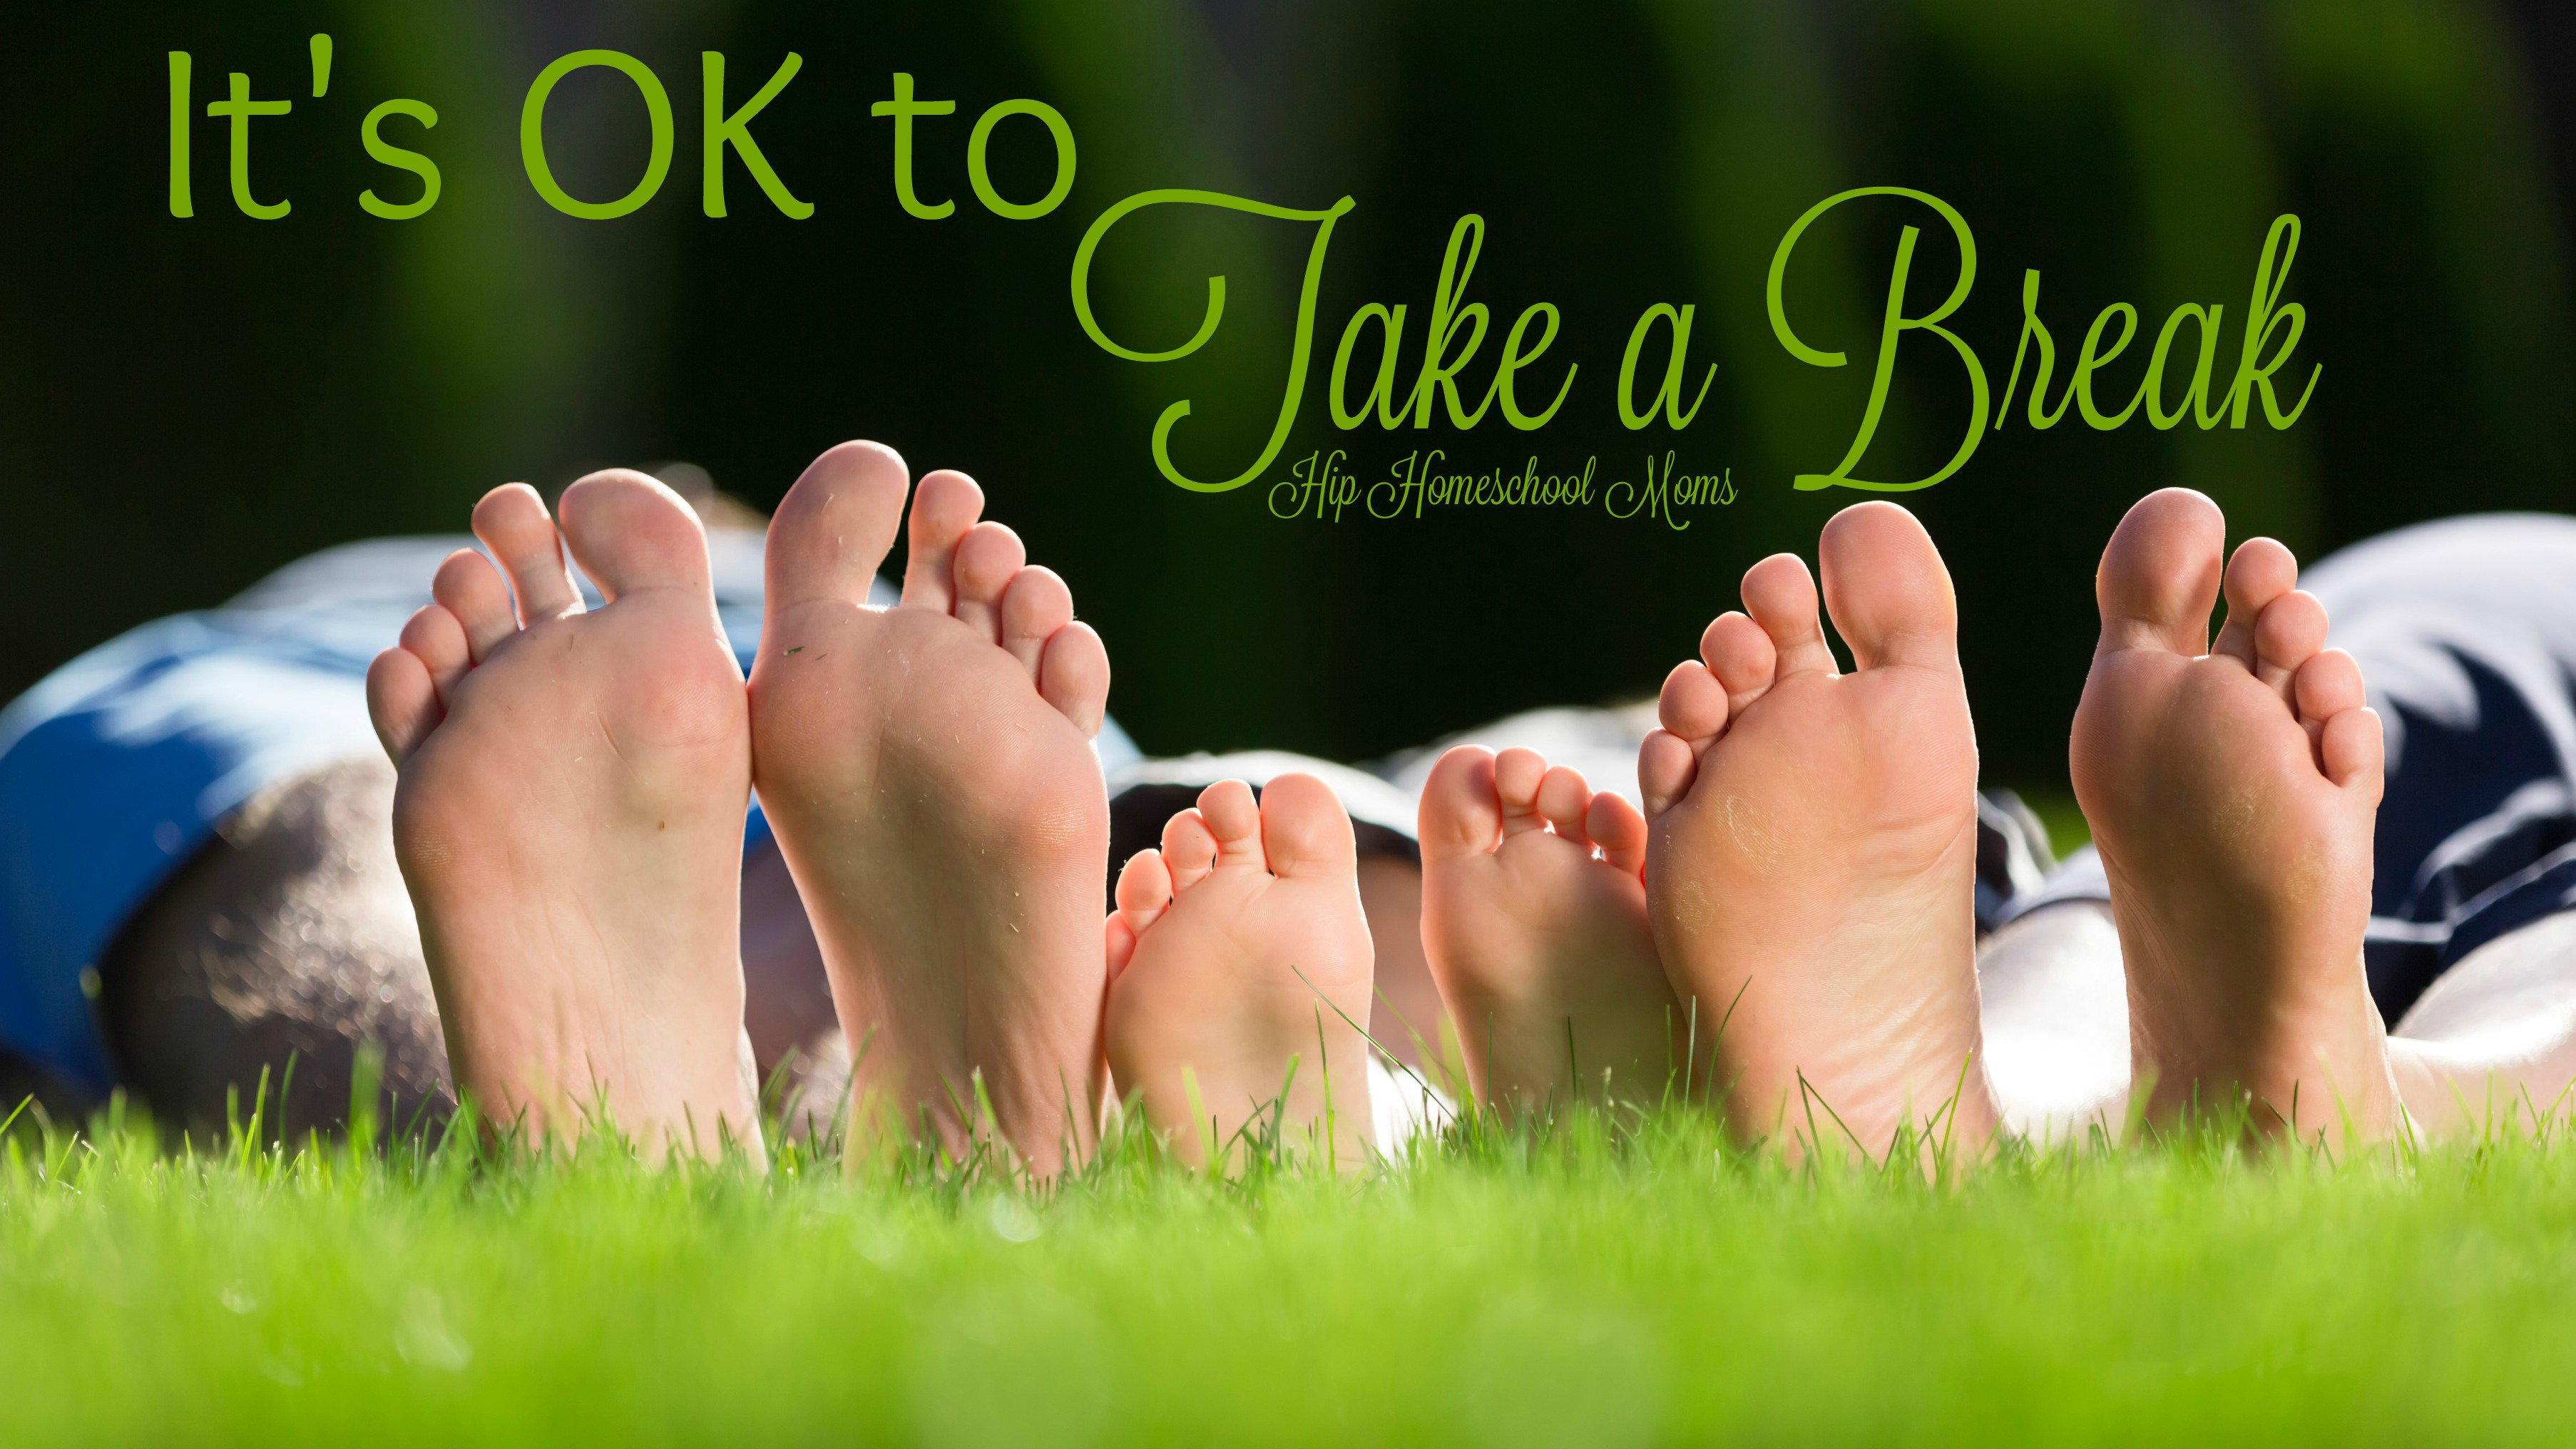 It's OK to Take a Break!